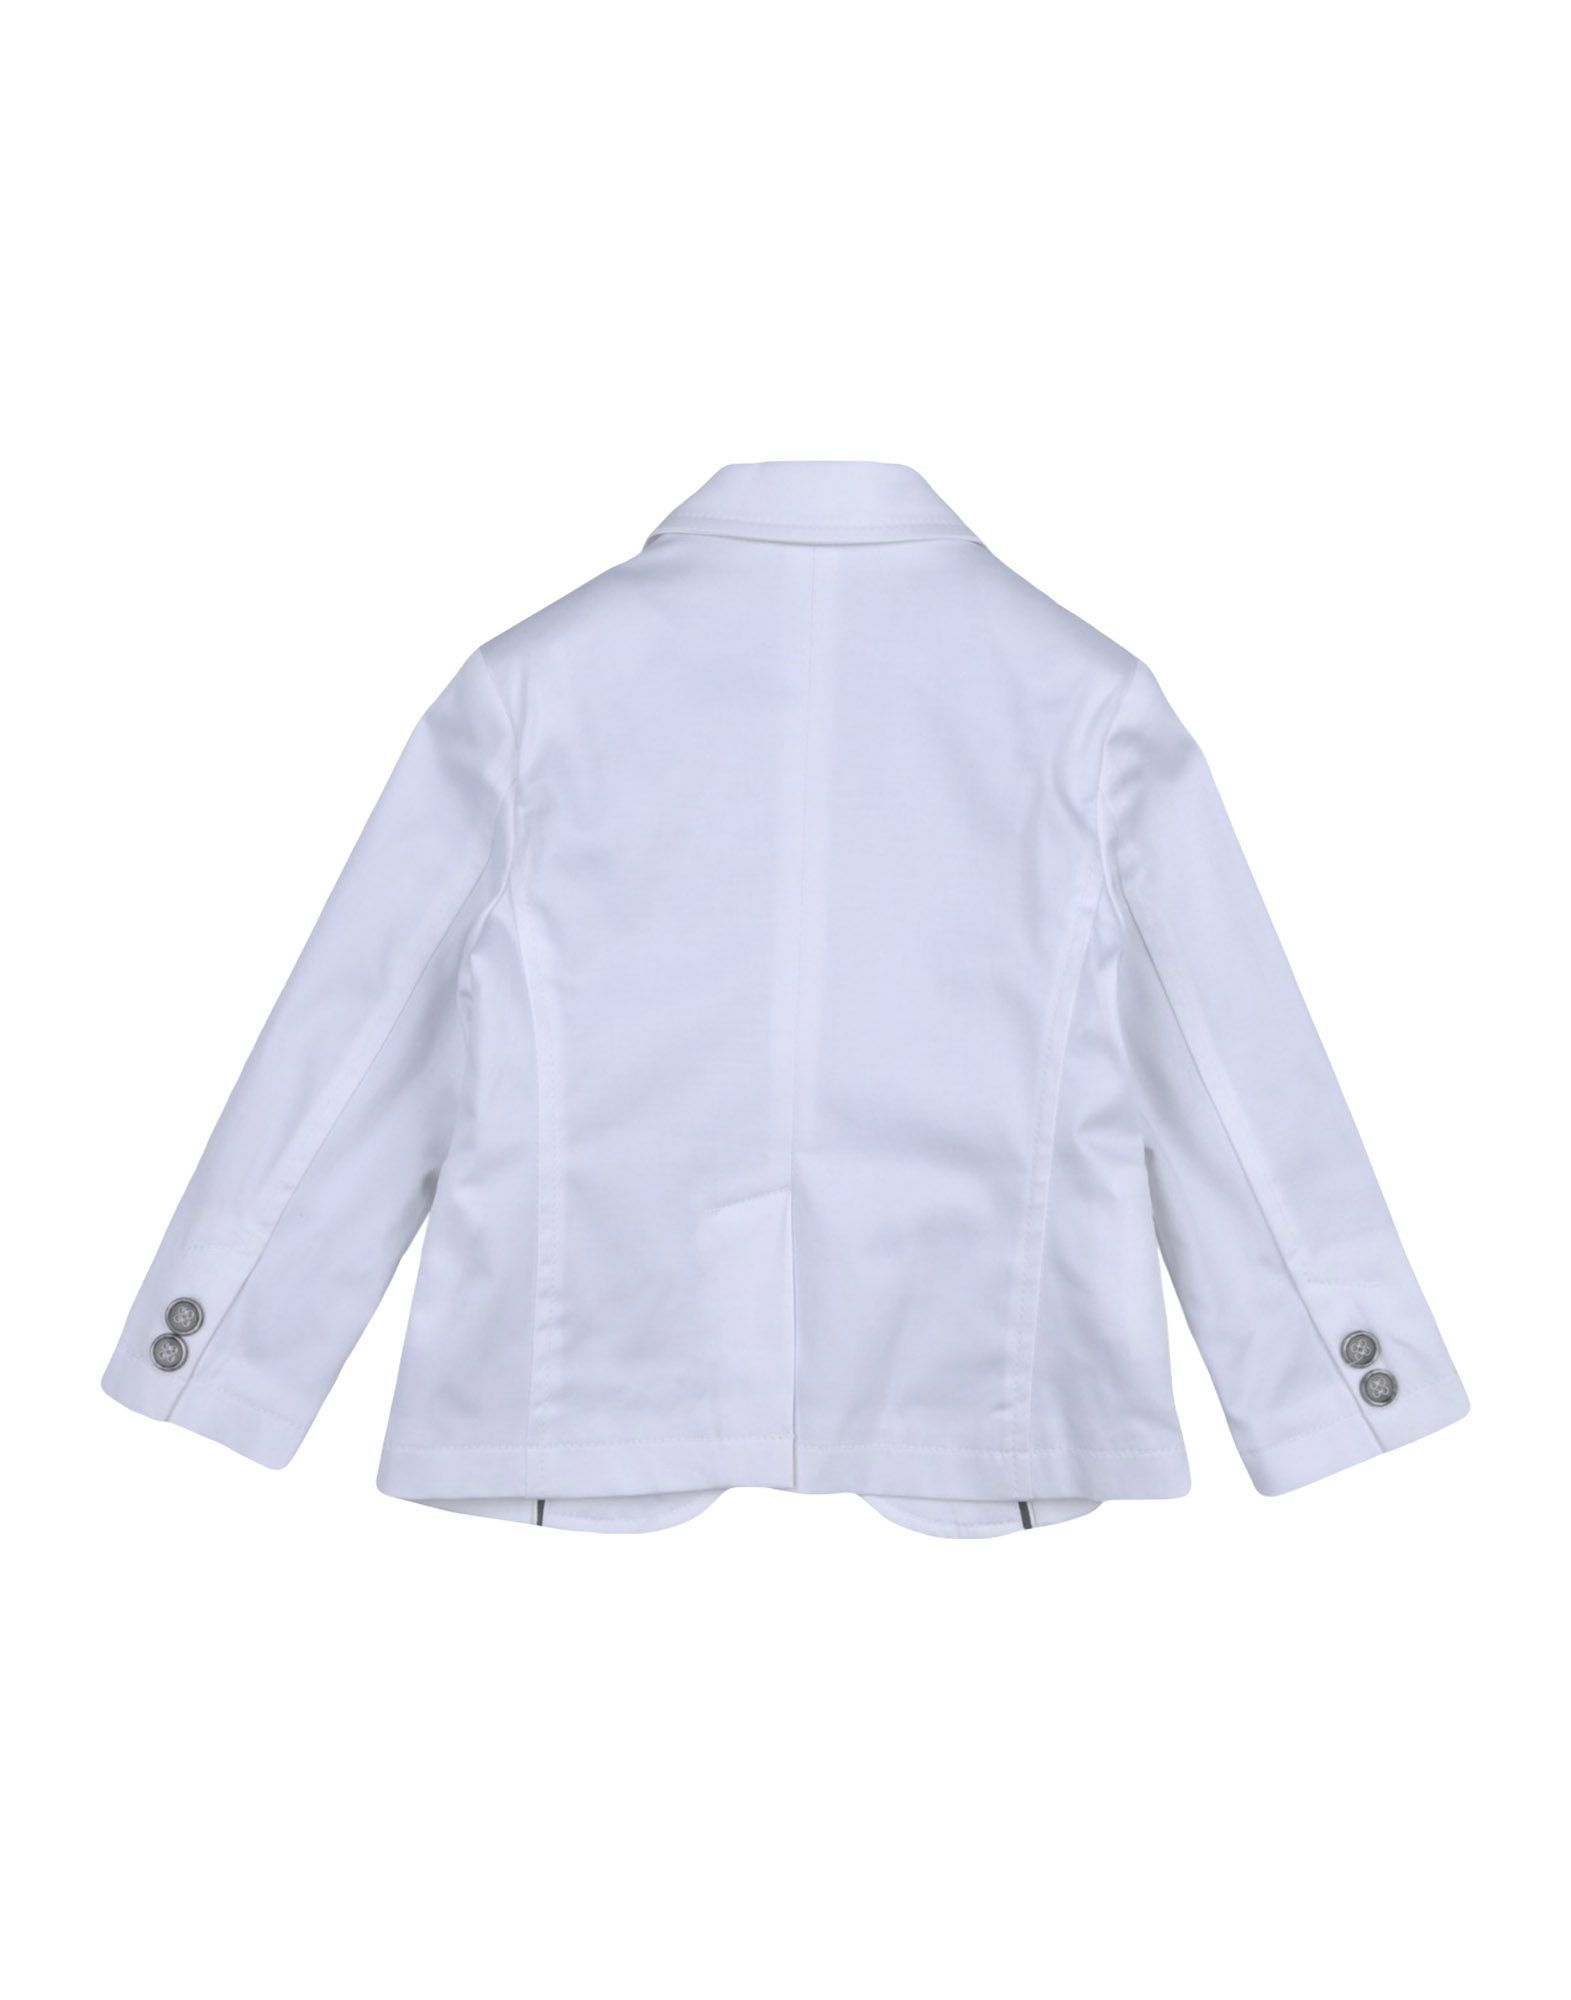 SUITS AND JACKETS Paolo Pecora White Boy Cotton